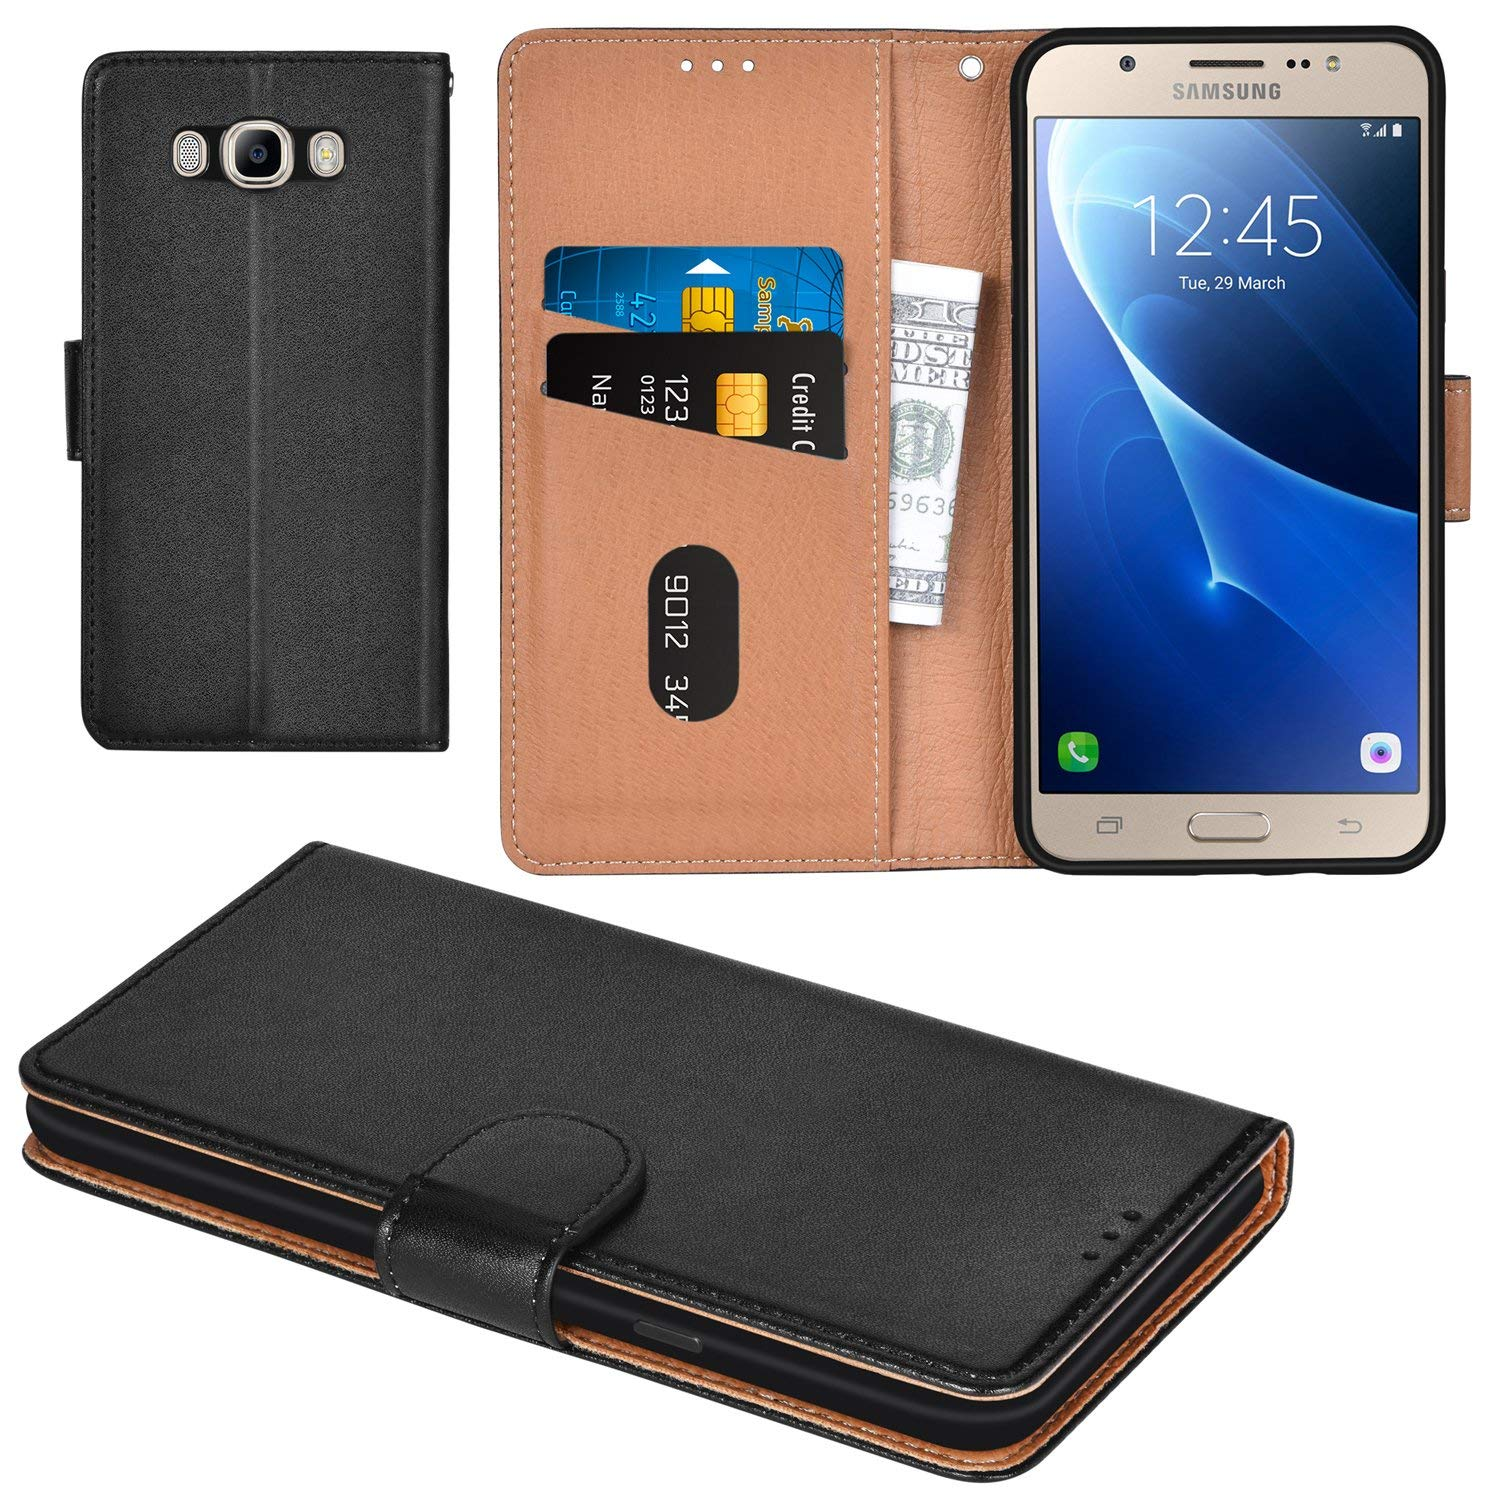 4aee5a86c69f Cheap 2016 Phone Case, find 2016 Phone Case deals on line at Alibaba.com